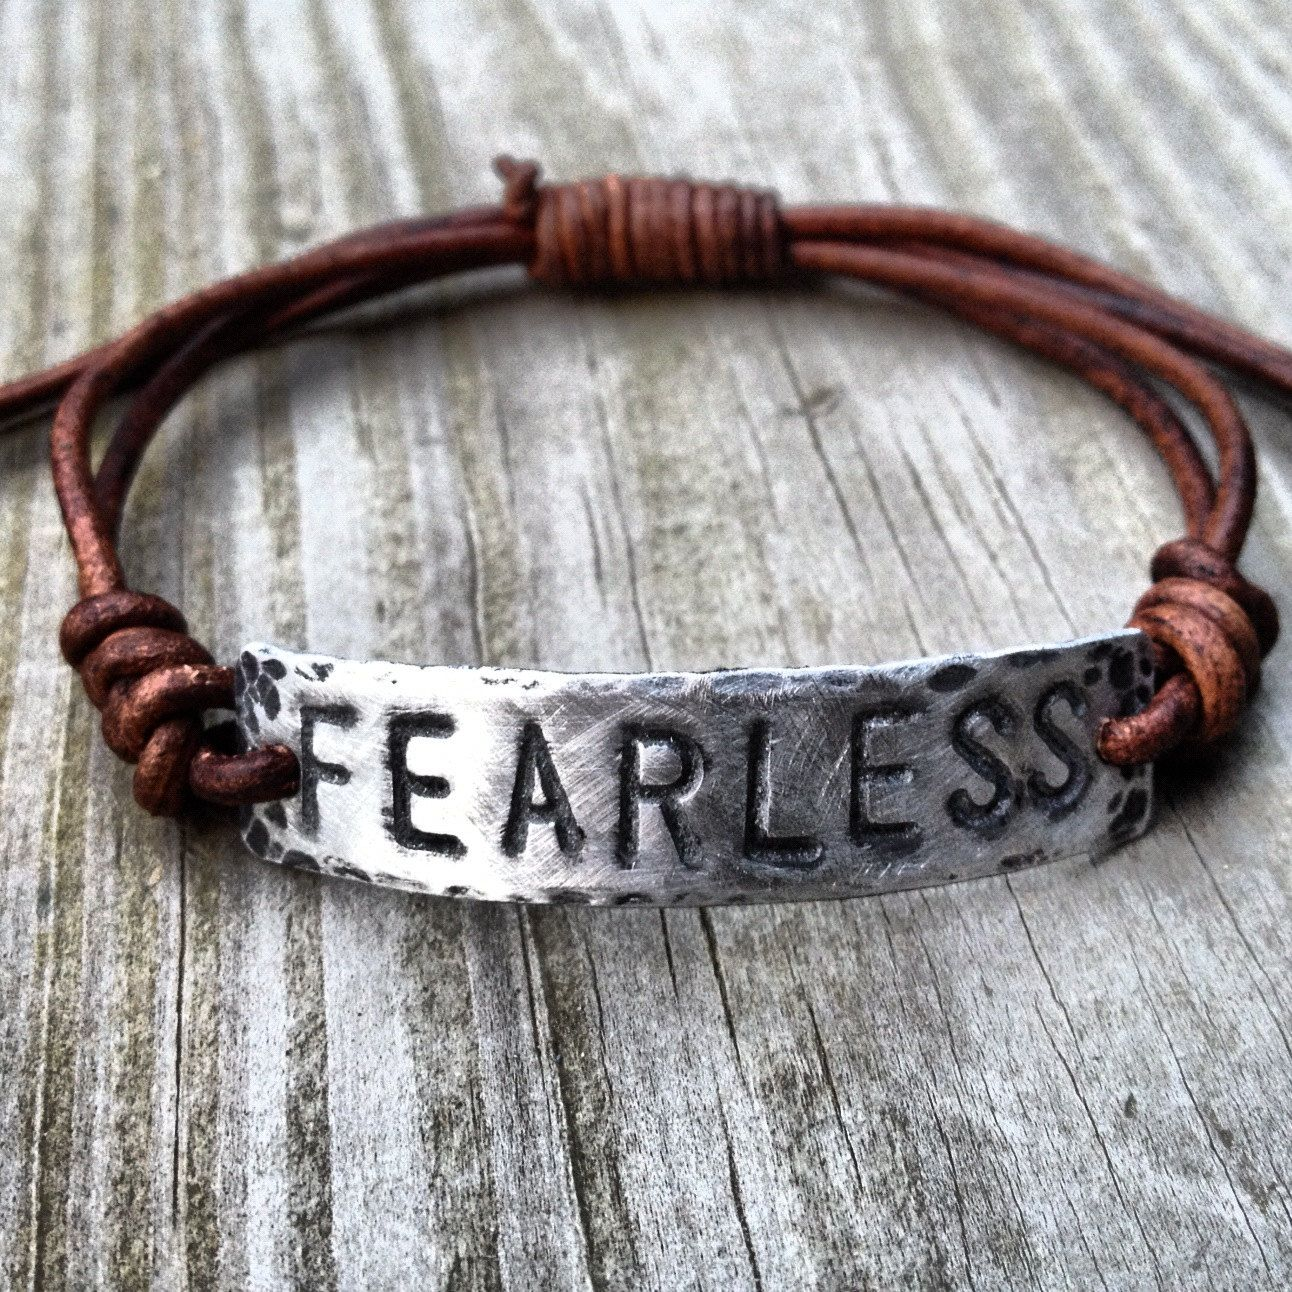 Fearless Id Bracelet, Silver, Pewter, Leather, Hand Stamped, Inspirational  Jewelry, Bracelet With Words, Girlfriend Gift, Boyfriend Gift